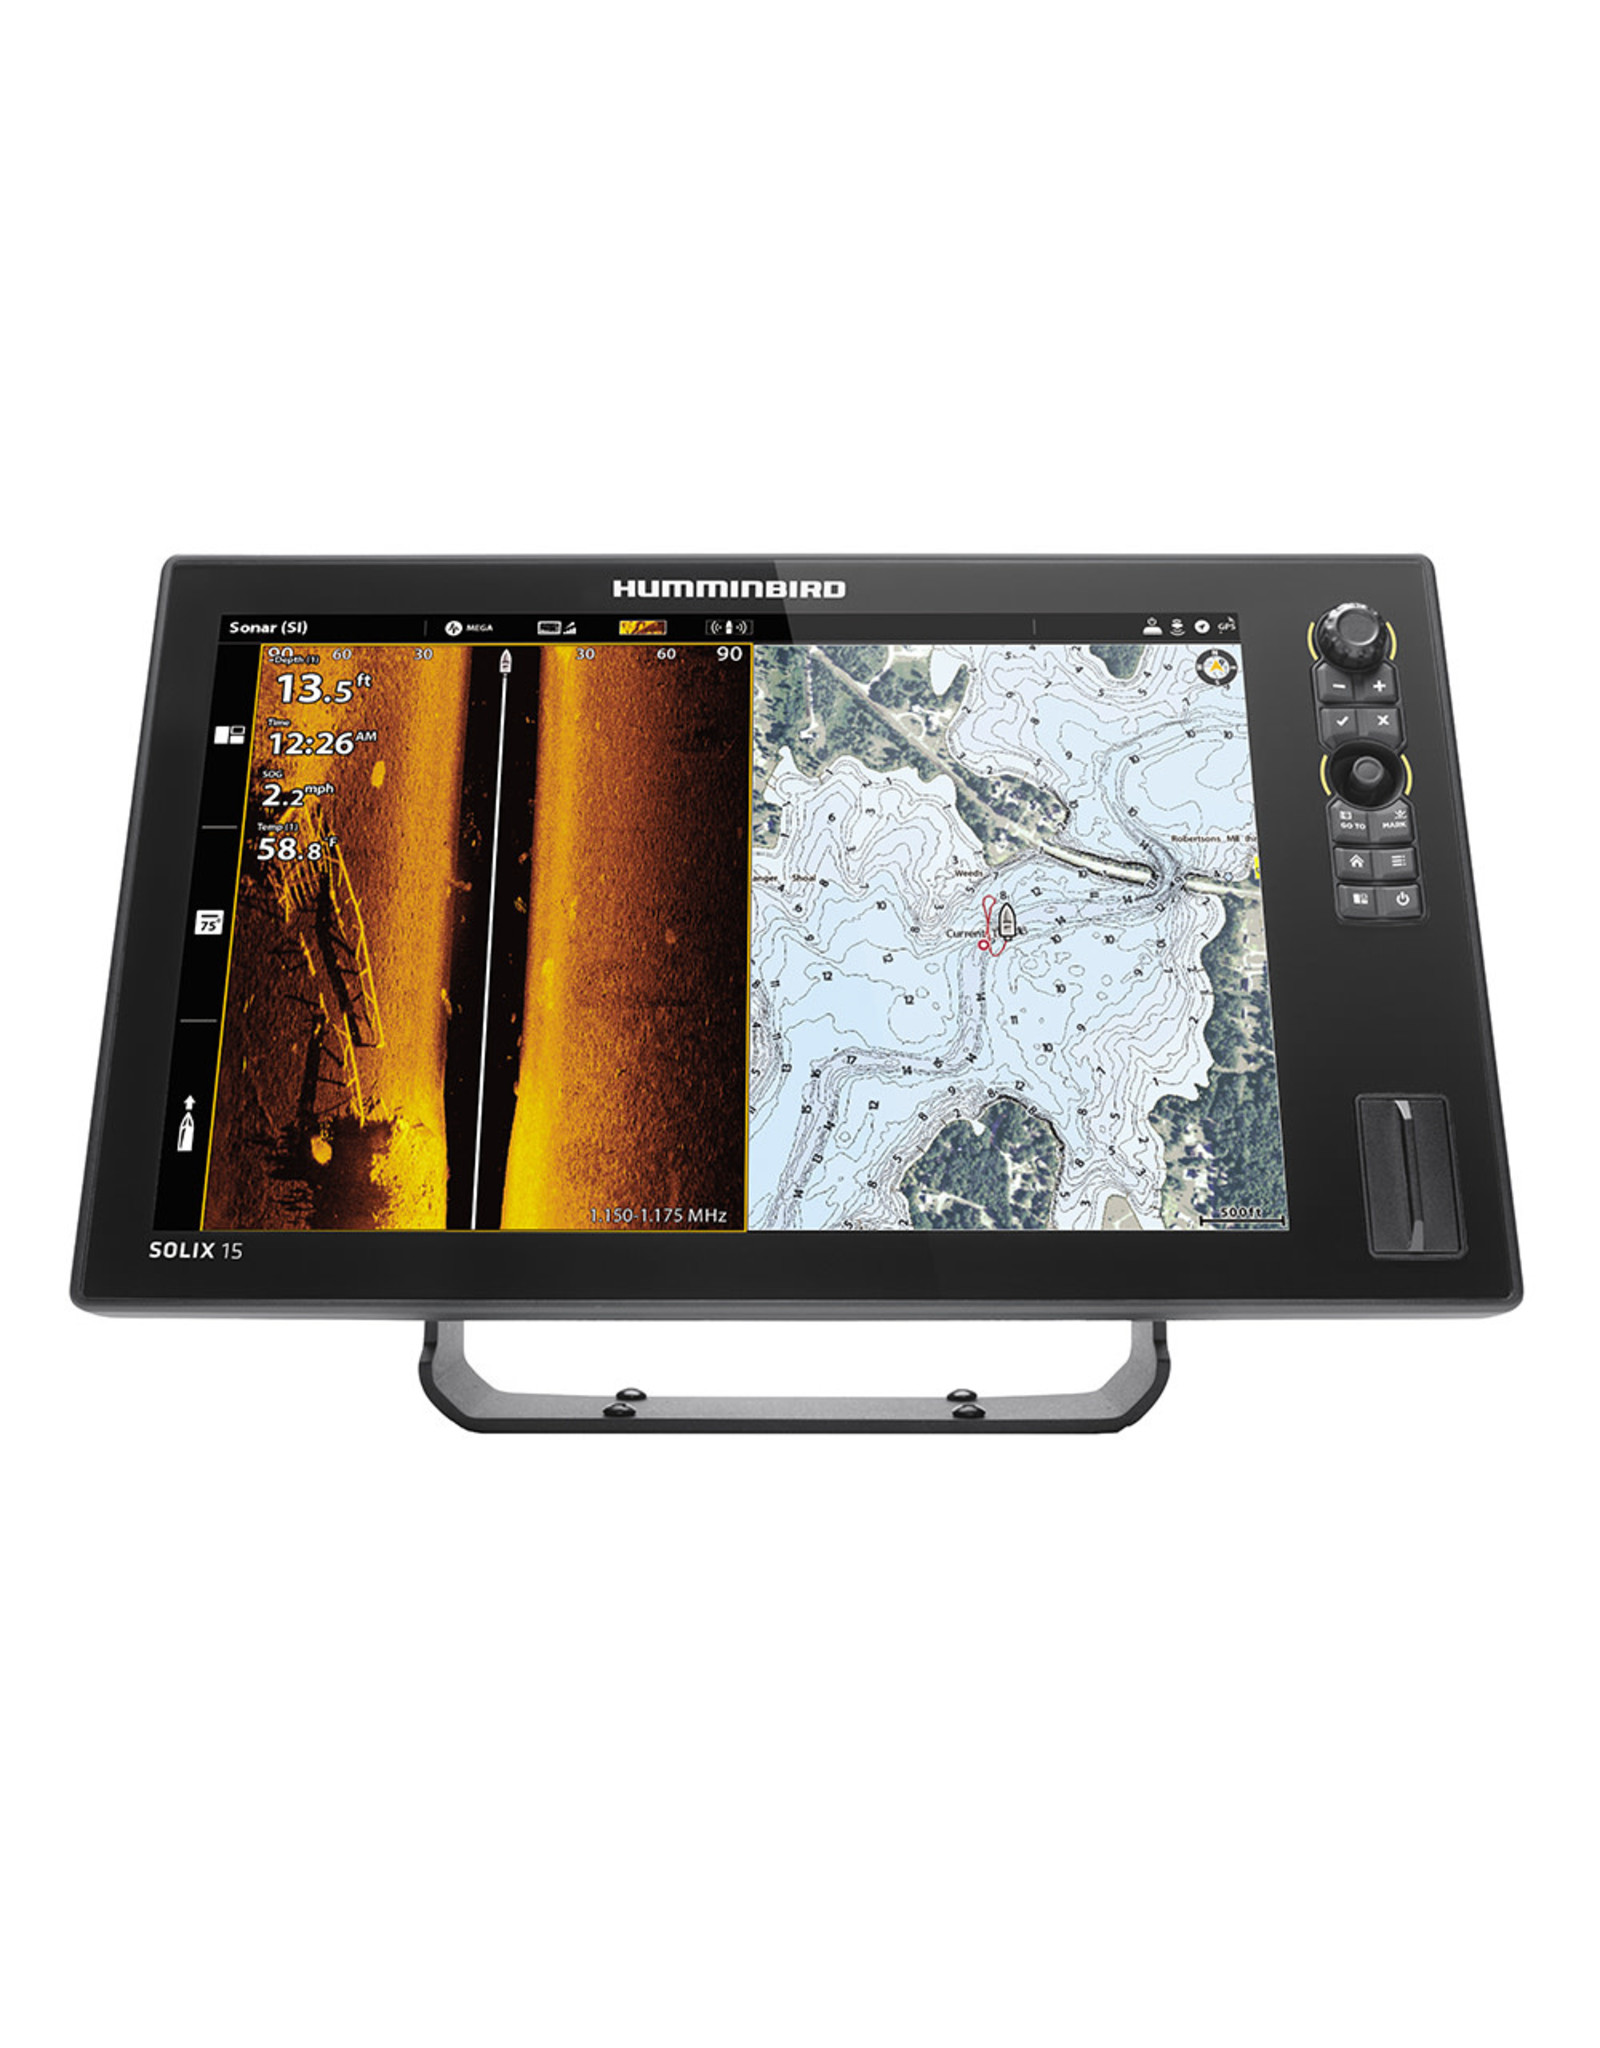 Humminbird SOLIX® 15 CHIRP MEGA SI+ G3 CHO Display Only